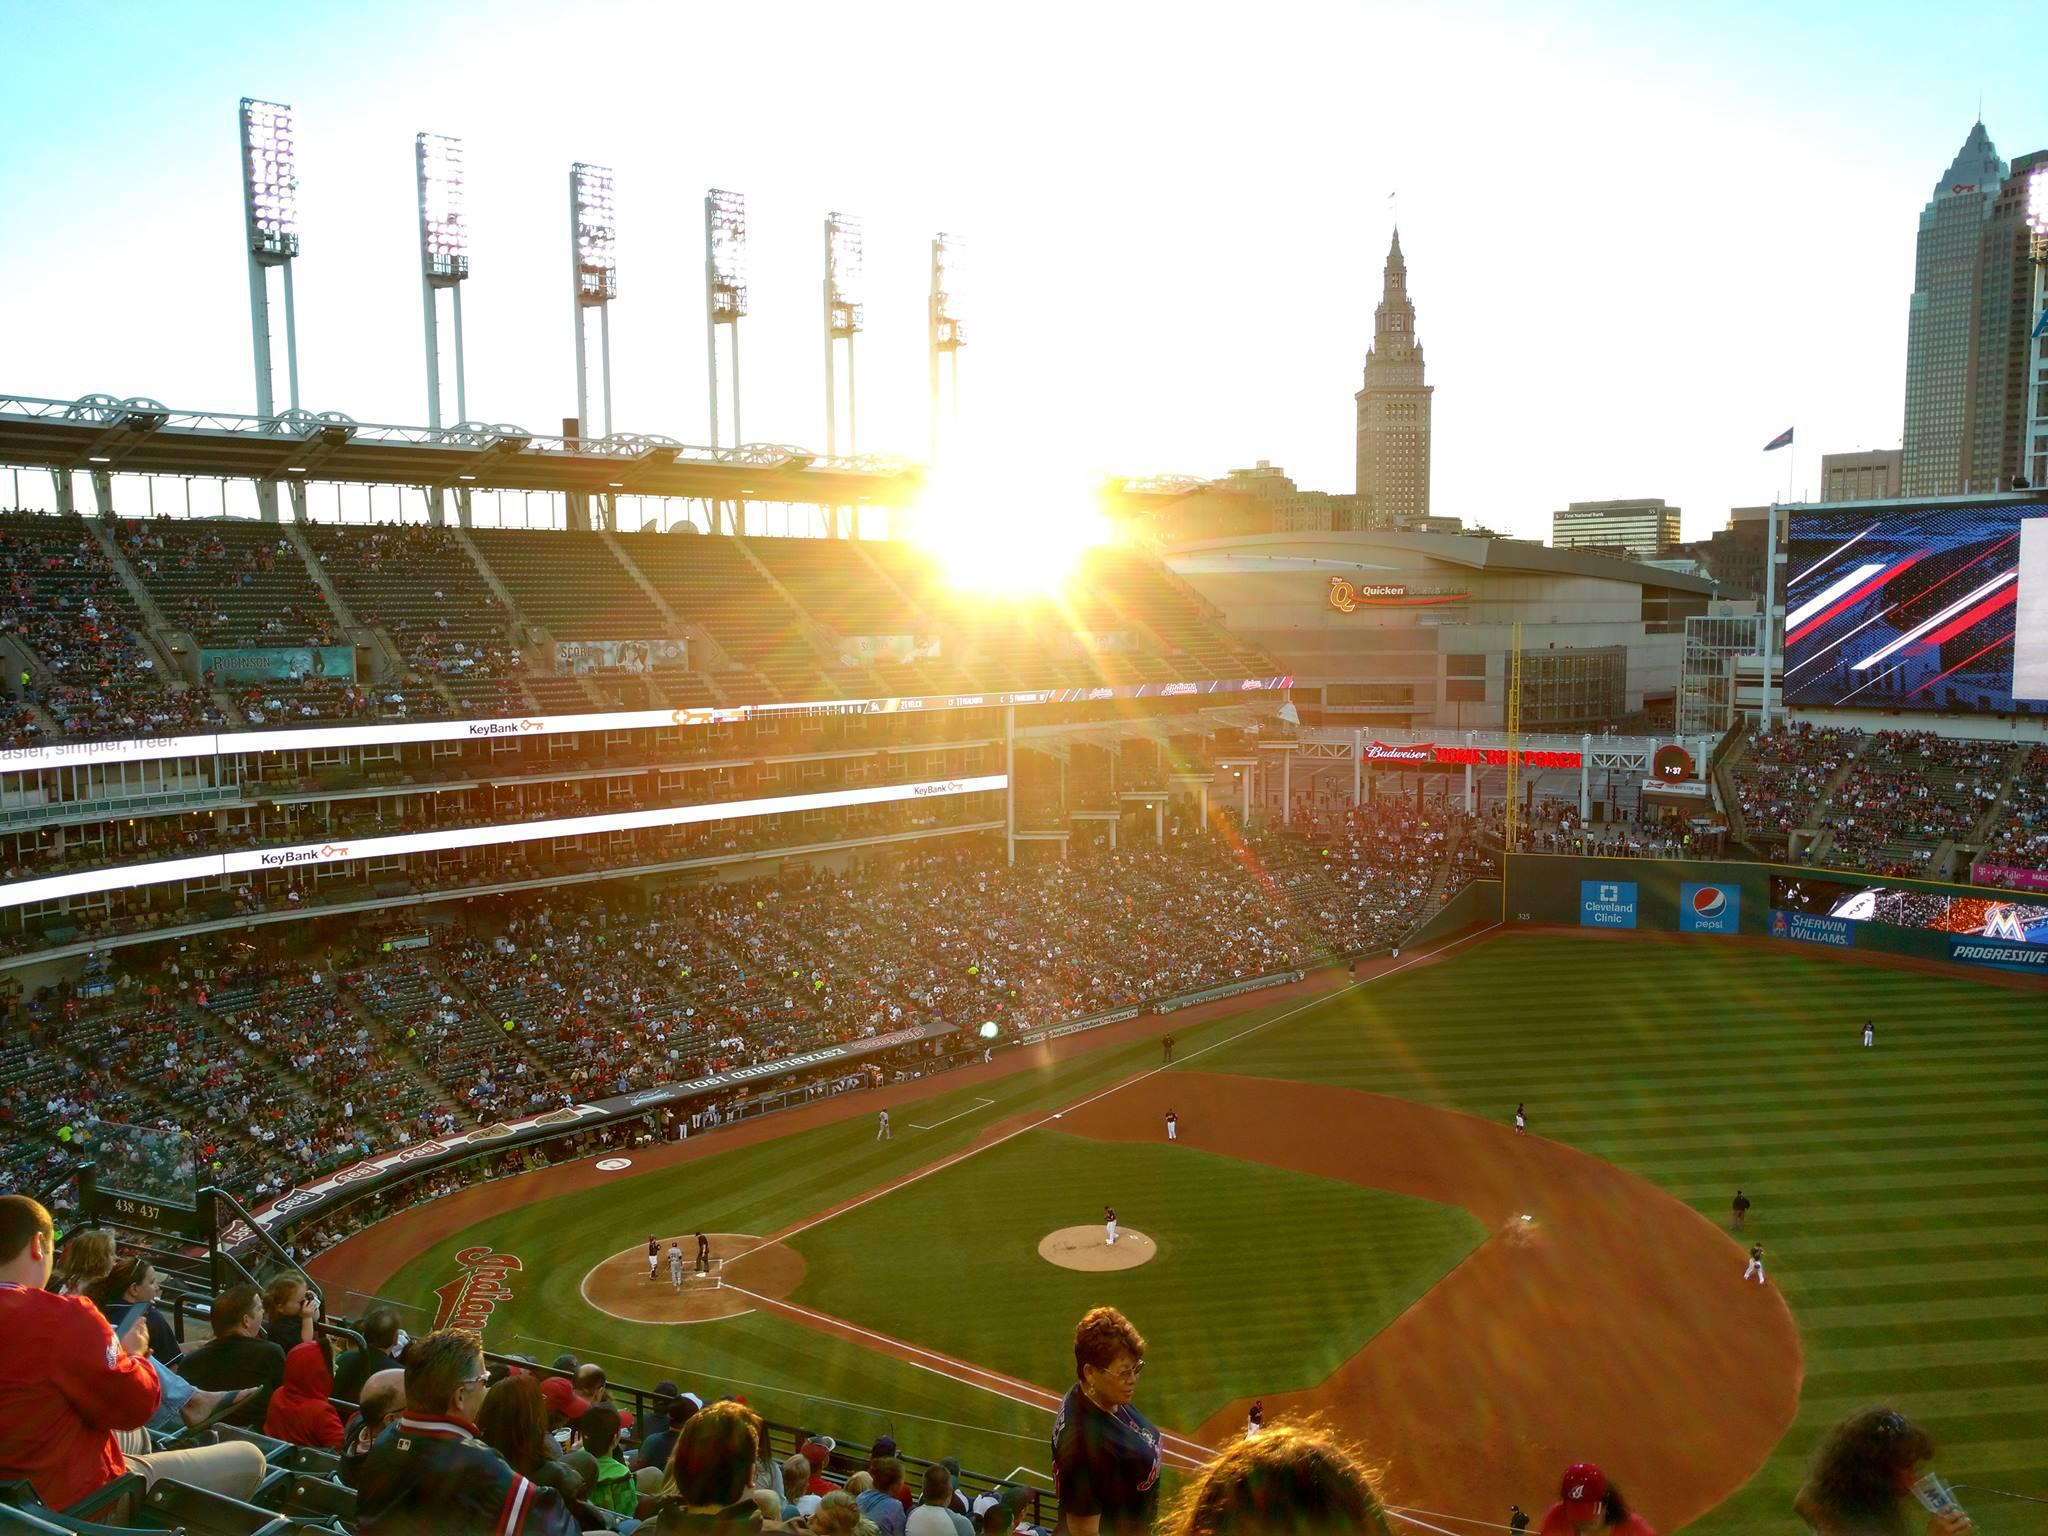 Cleveland Indians vs. New York Yankees (Away)